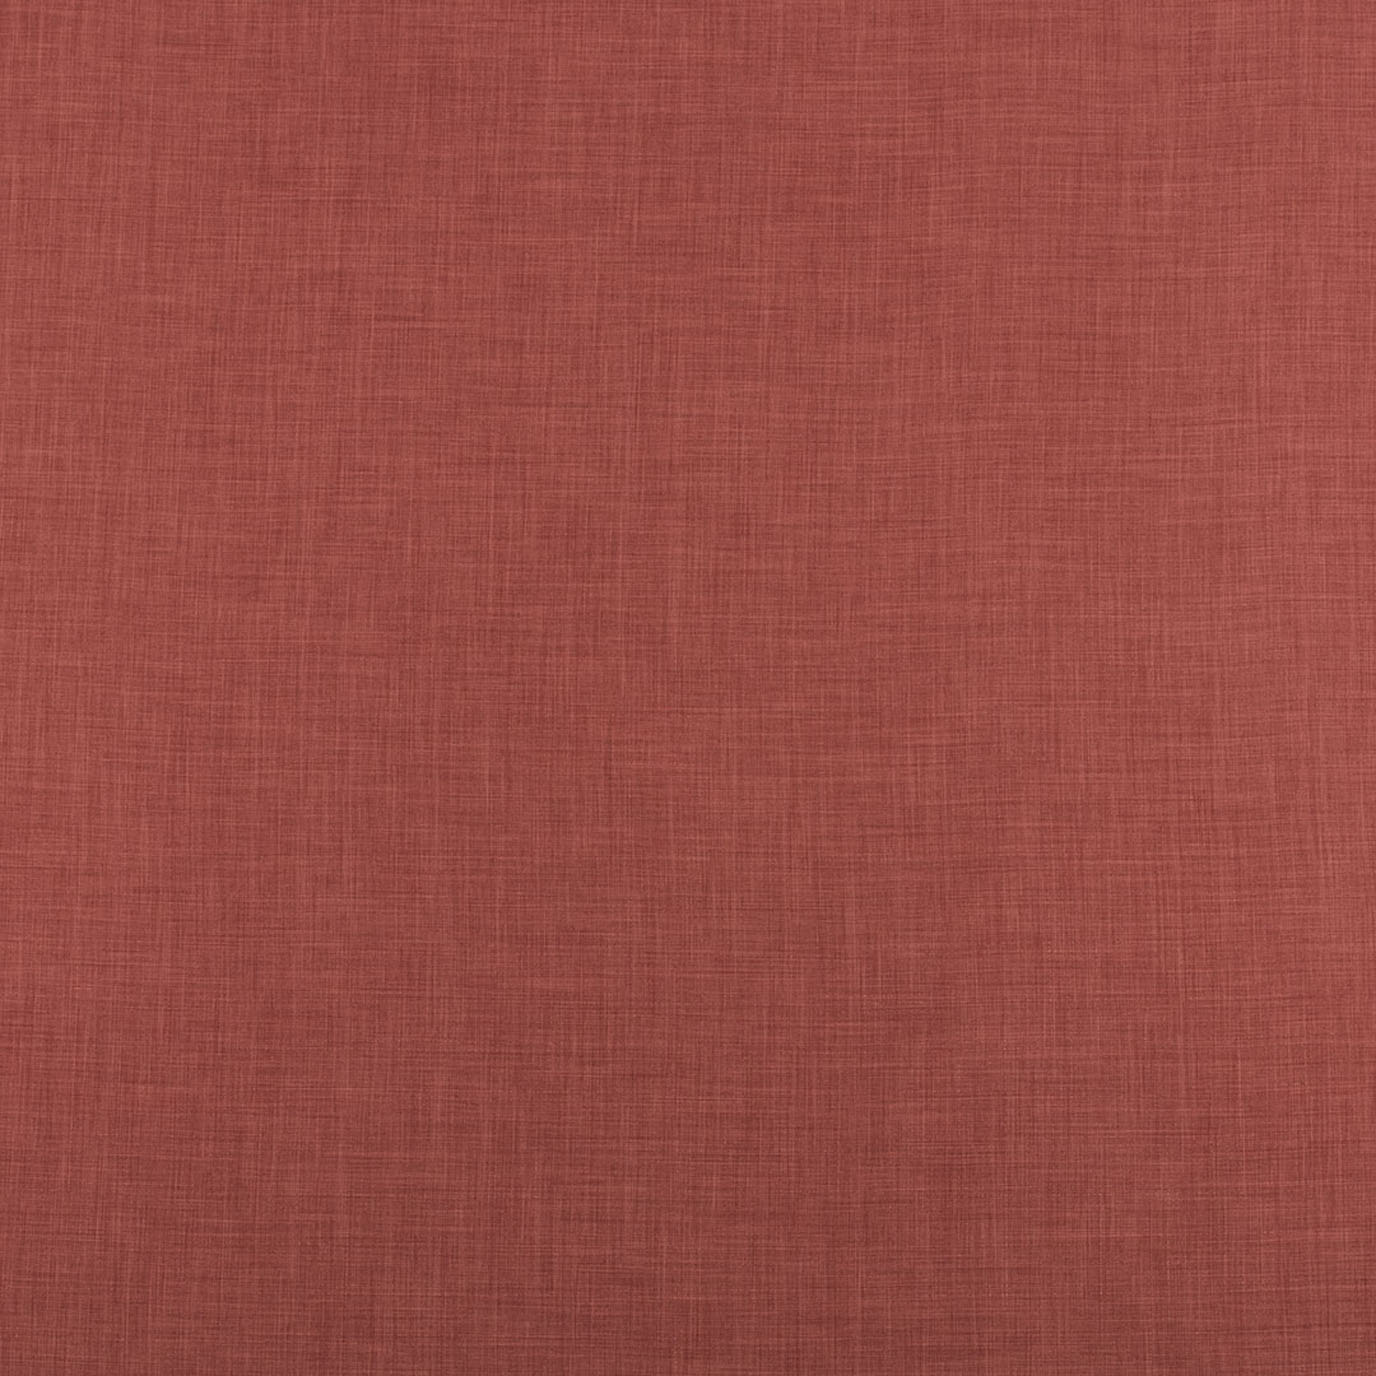 Hepworth Textured Red Fabric